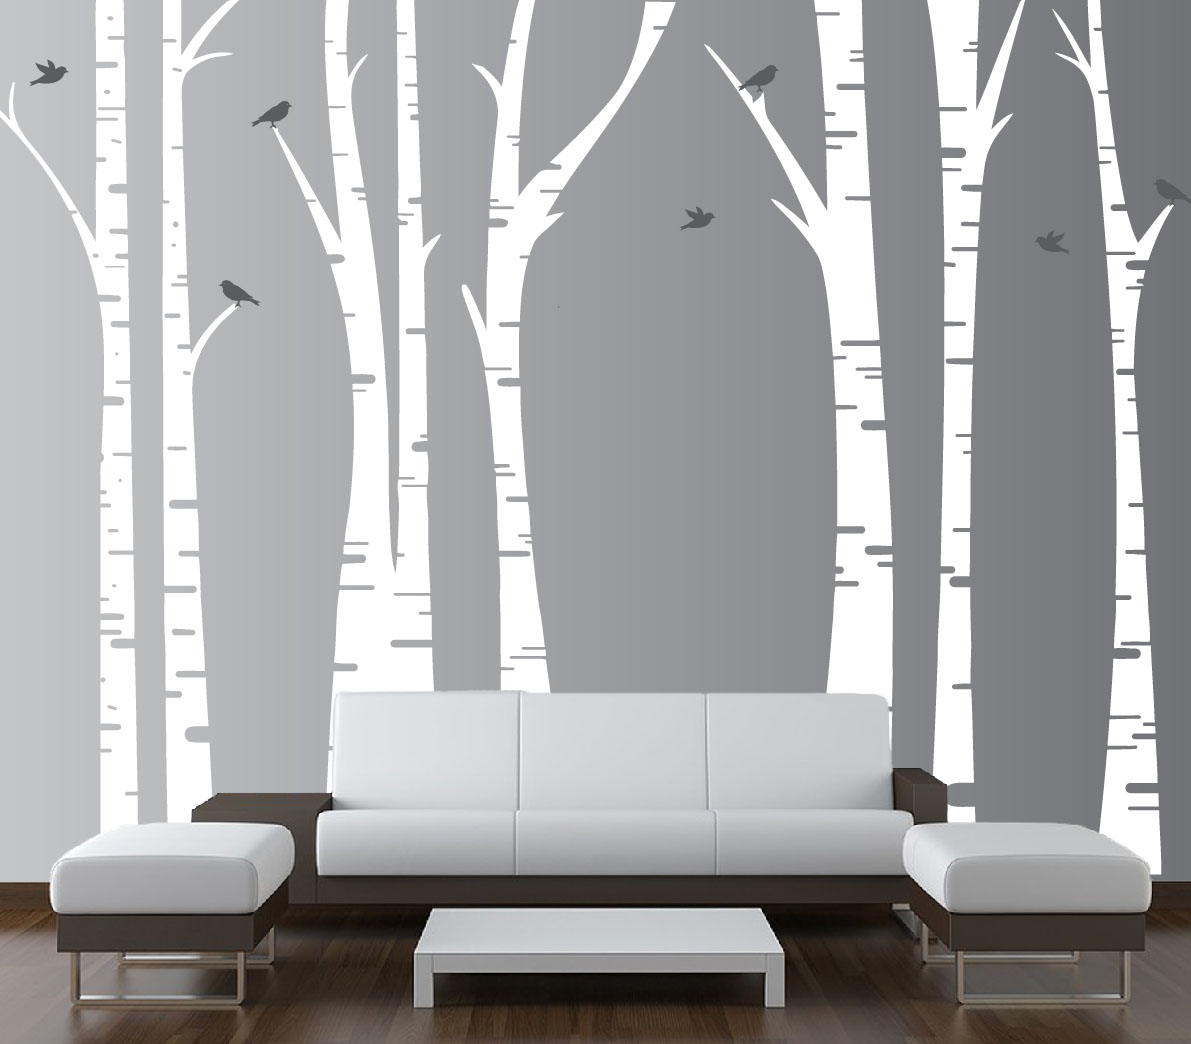 Living Room Tree Wall Decals Birds Part 51